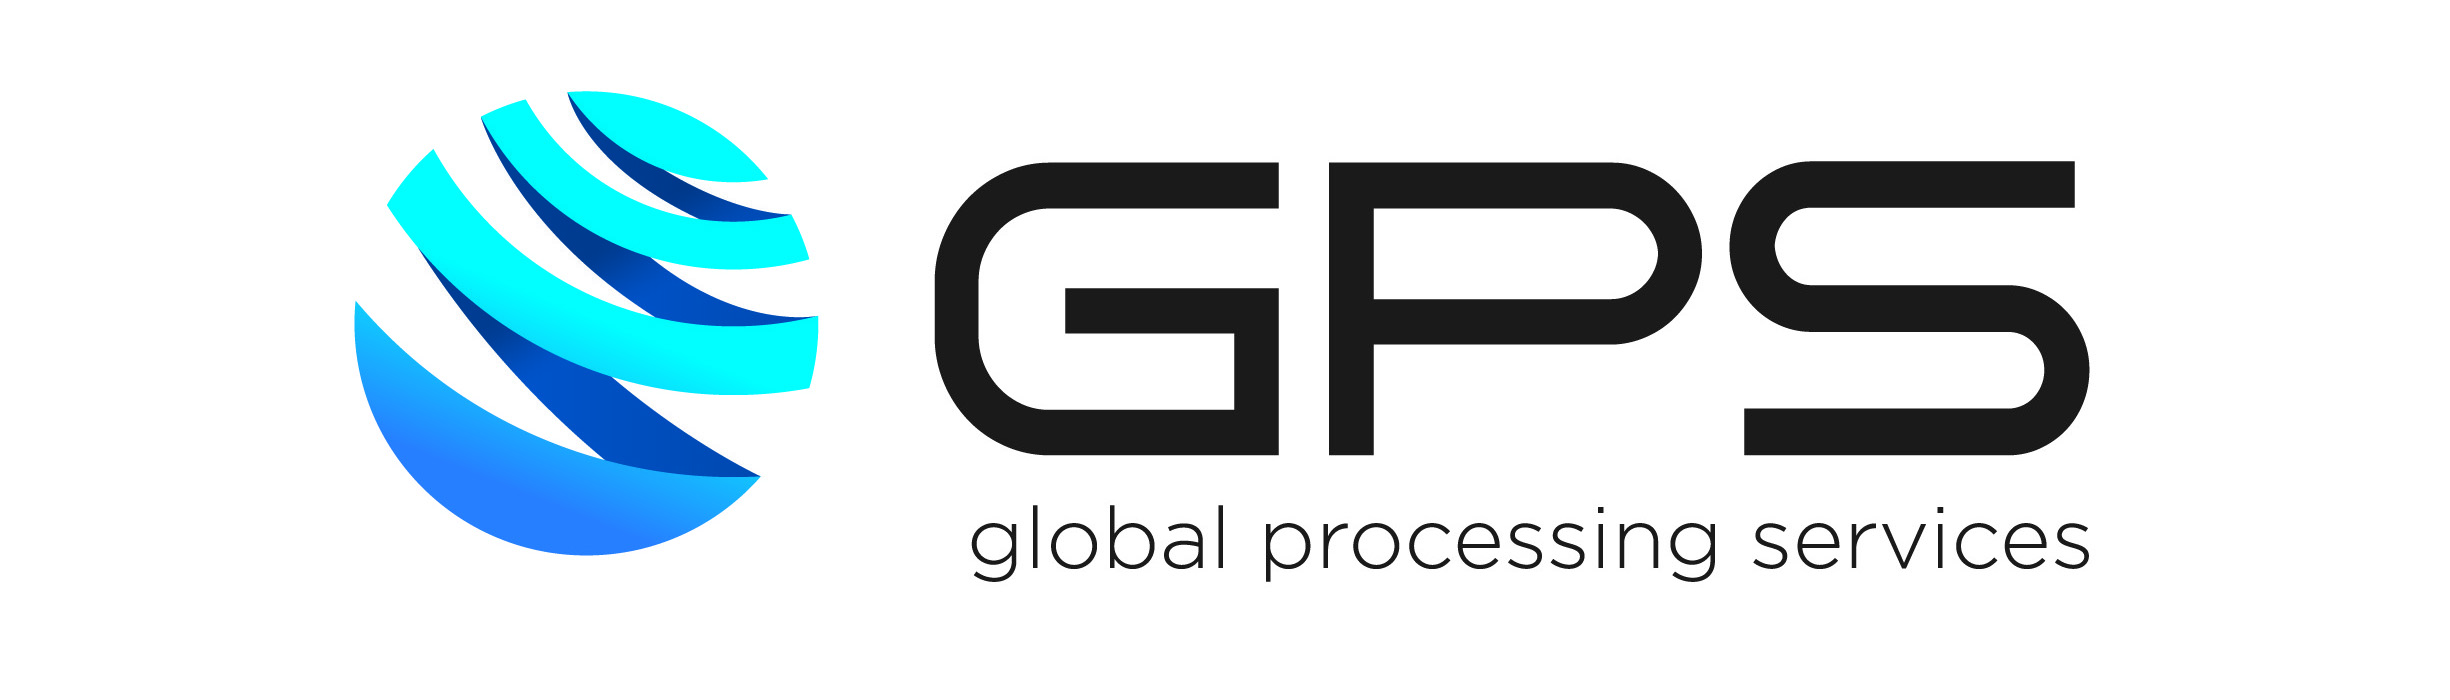 Global Processing Services Continues International Growth With Visa Investment